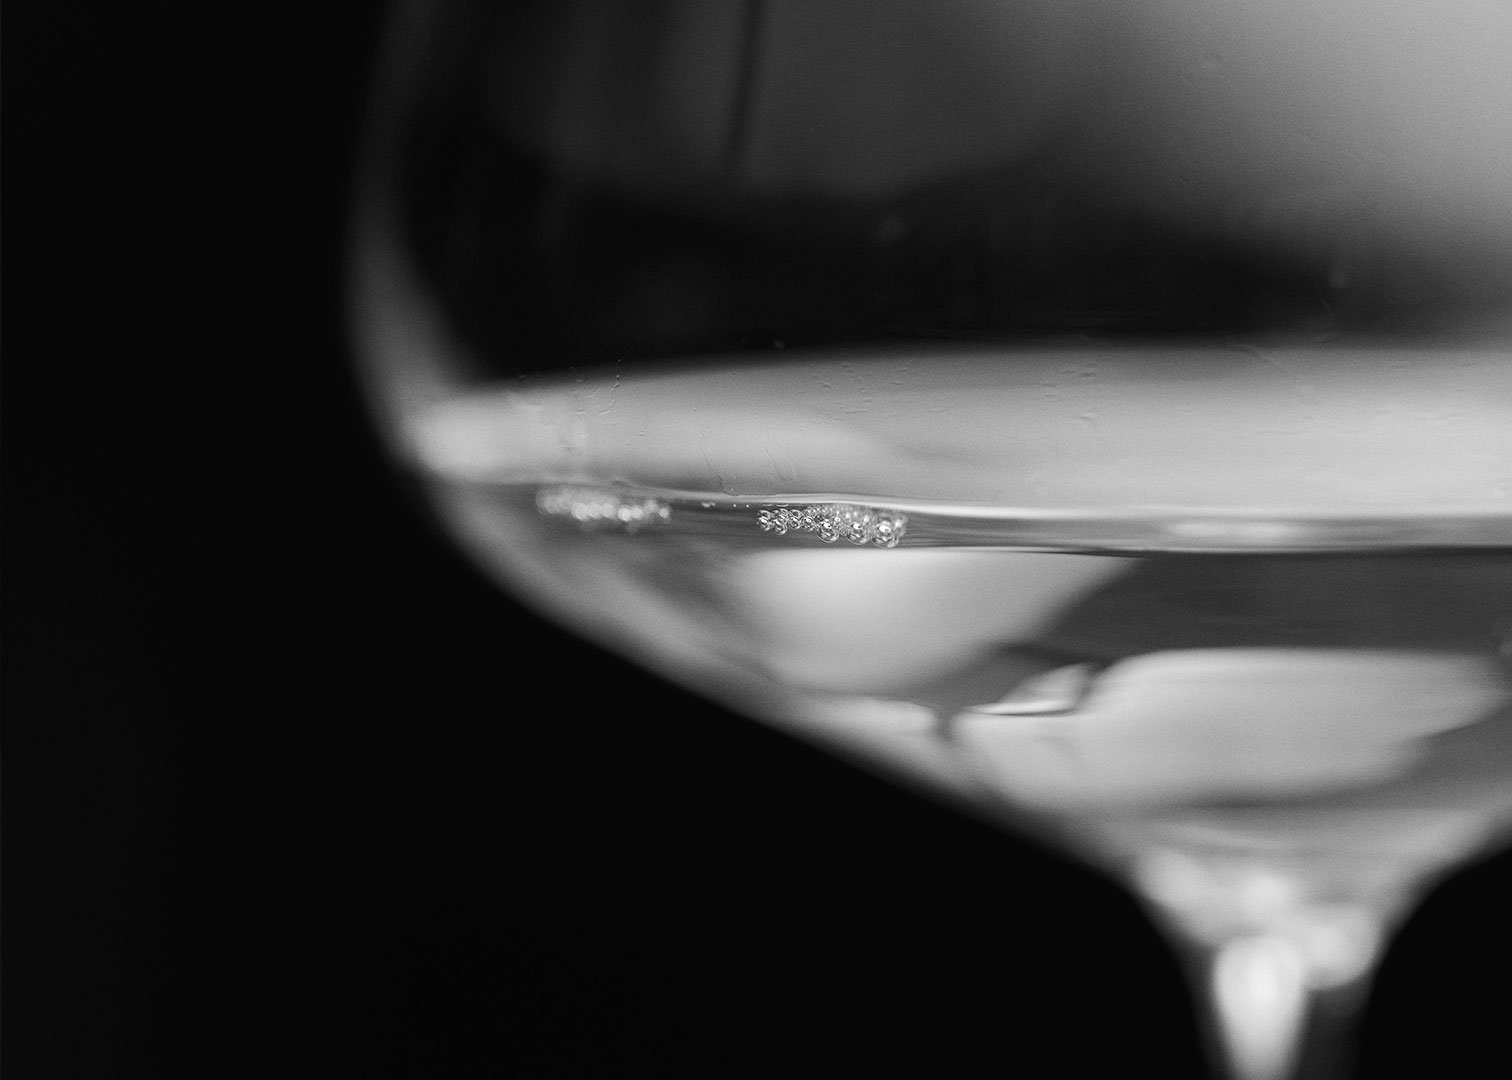 Bubbles: the Classic or Champenoise Method